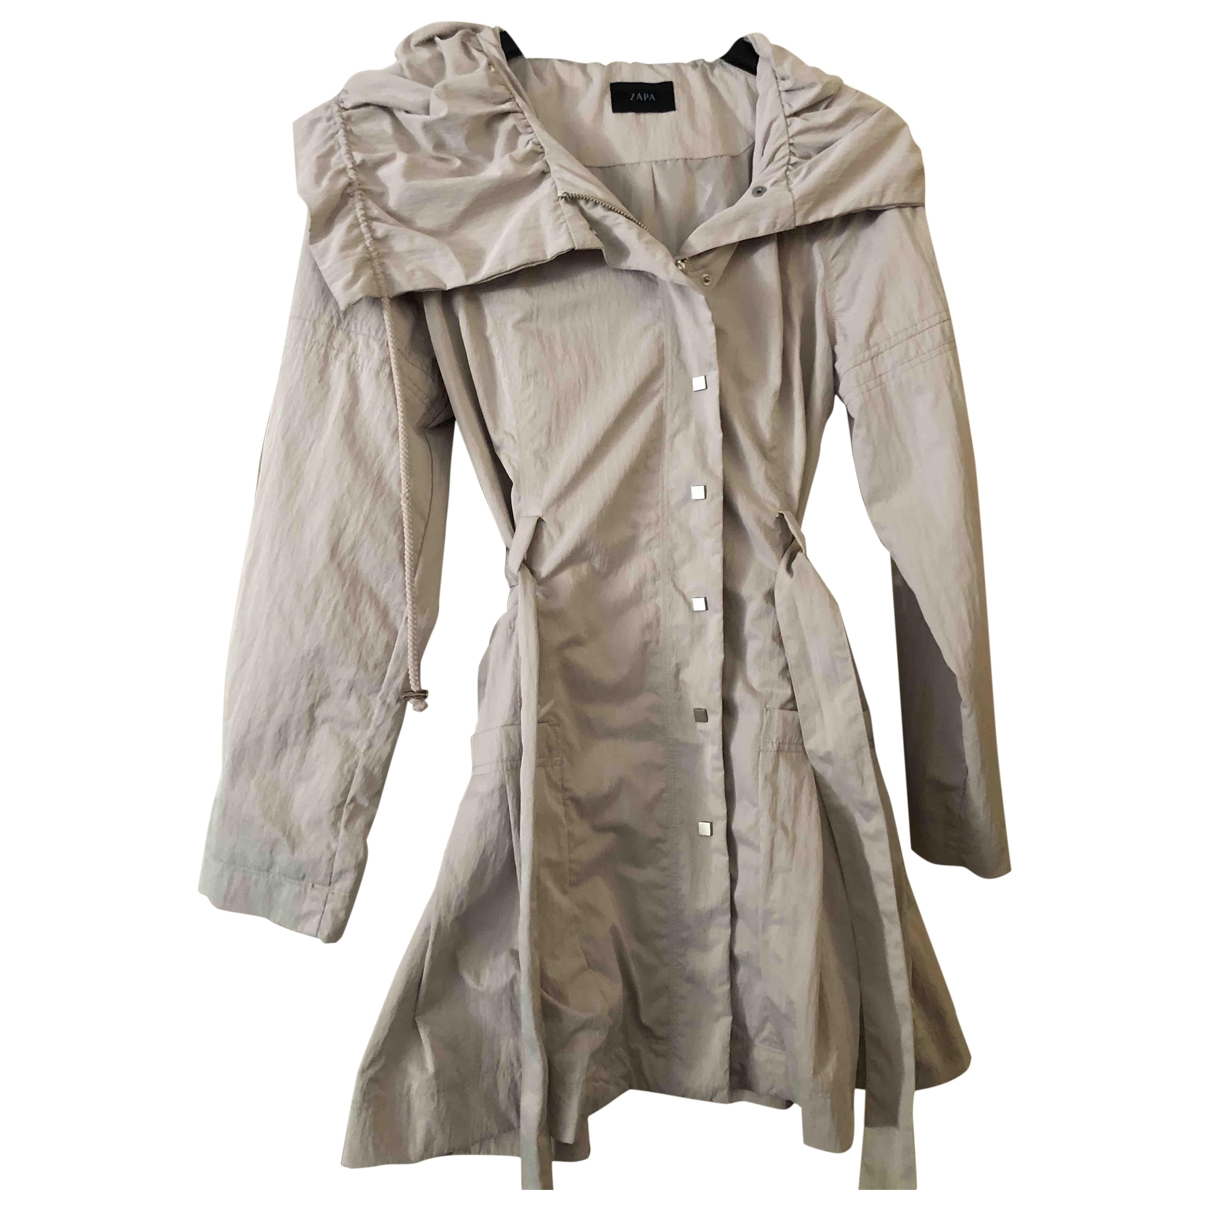 Zapa \N coat for Women 38 FR